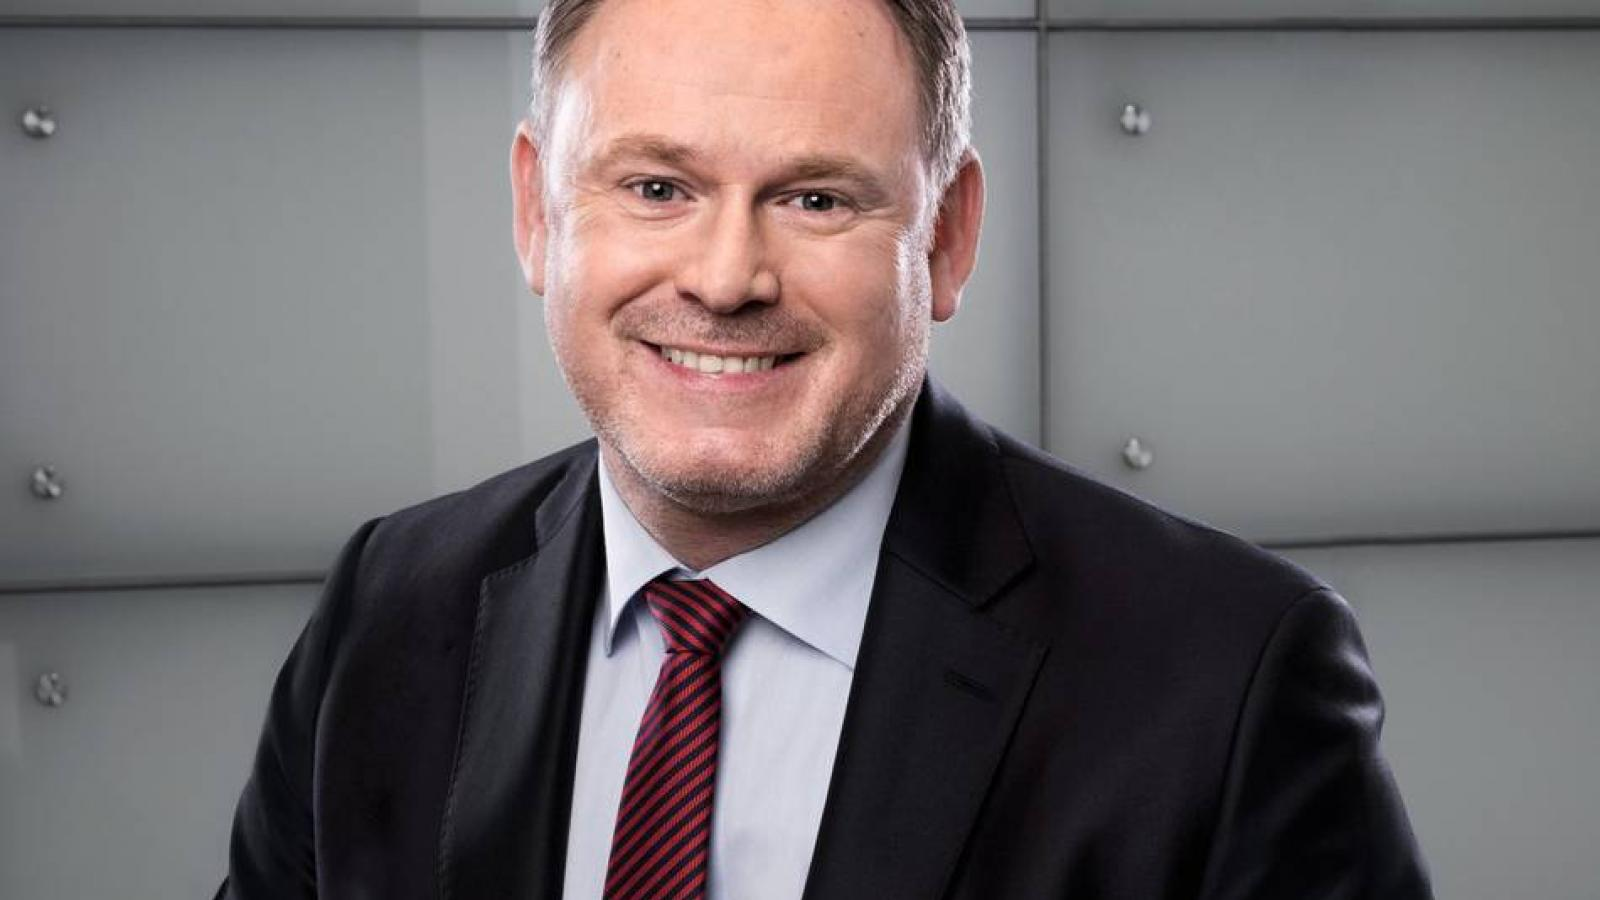 Stefan Kaufmann, Executive Managing Director der Olympus Europa SE & CO. KG